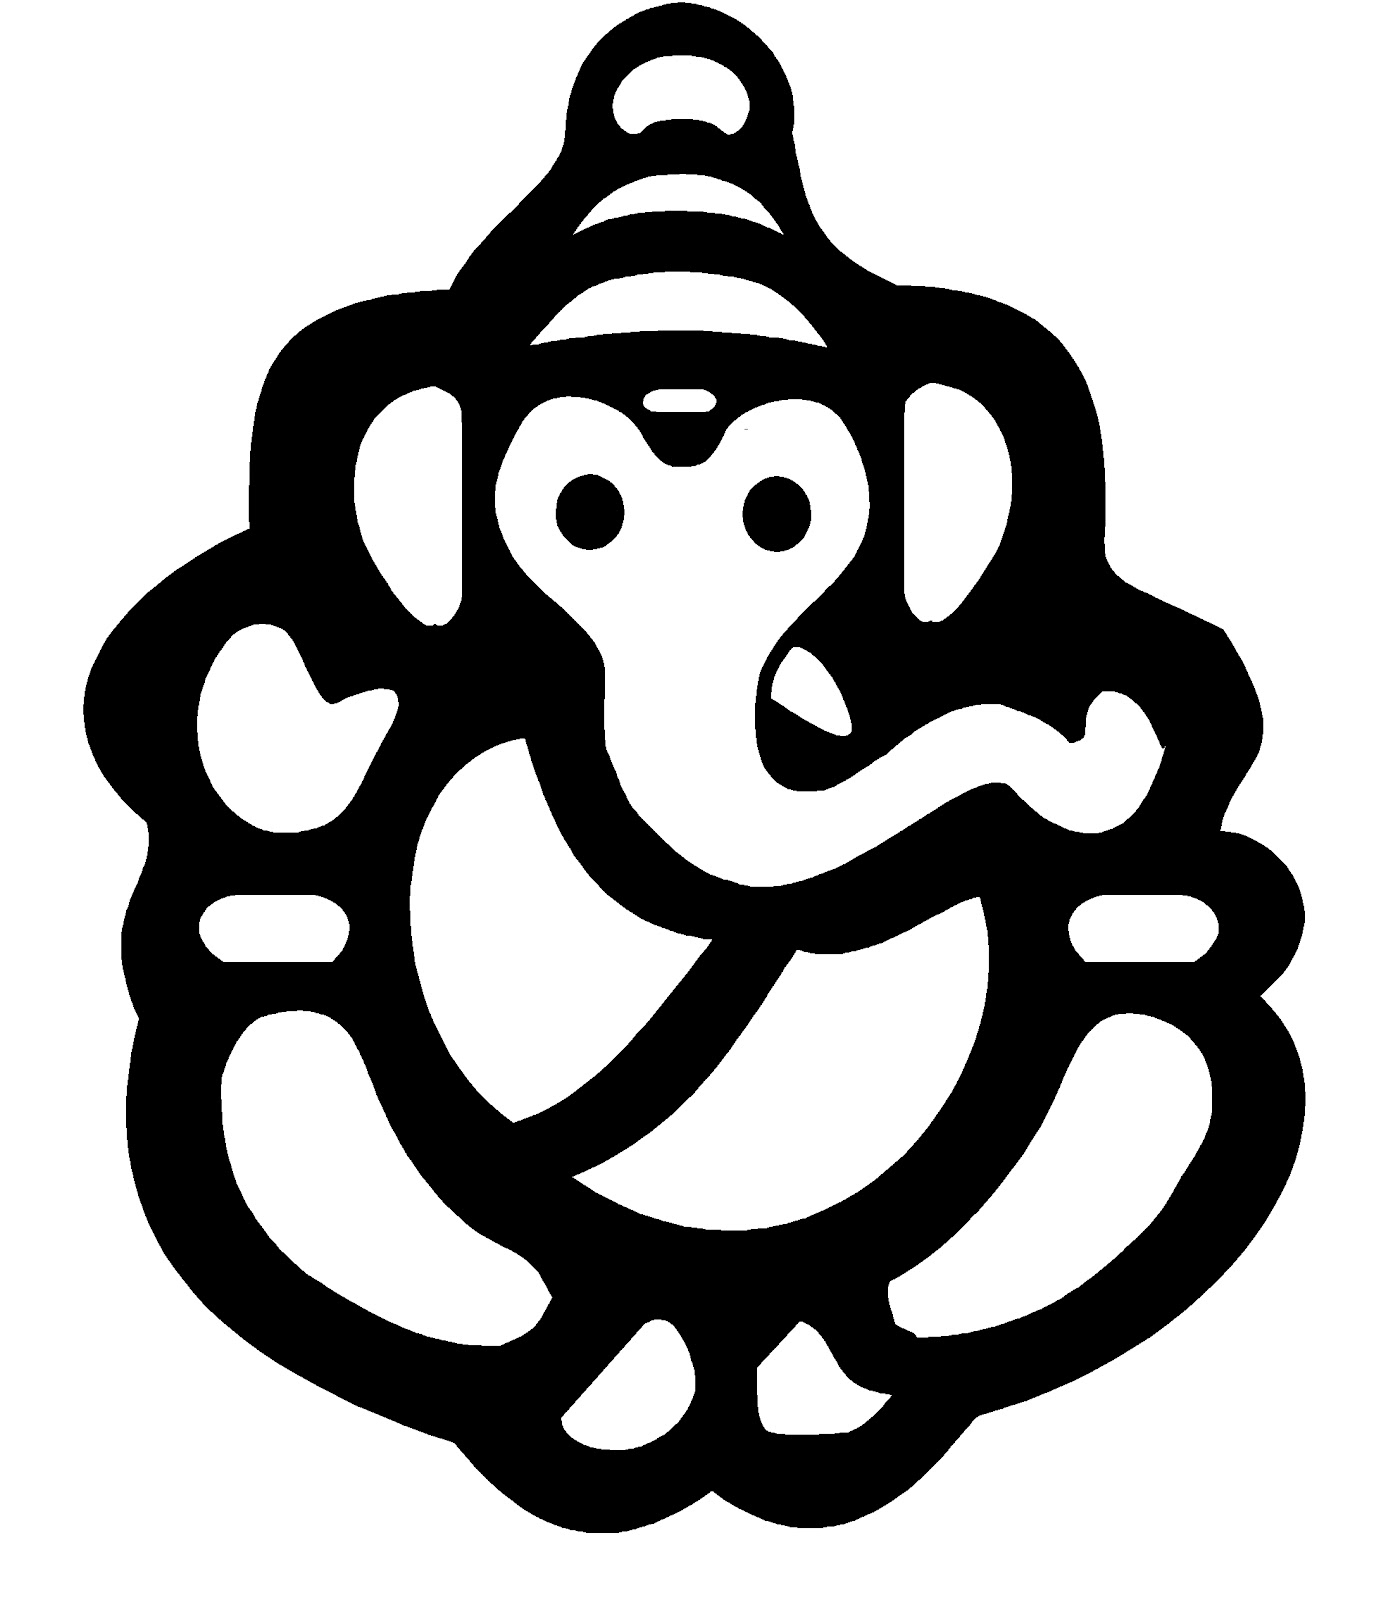 Pin Ganesh Clip Art Black Outline Drawing White Hands Line God ...